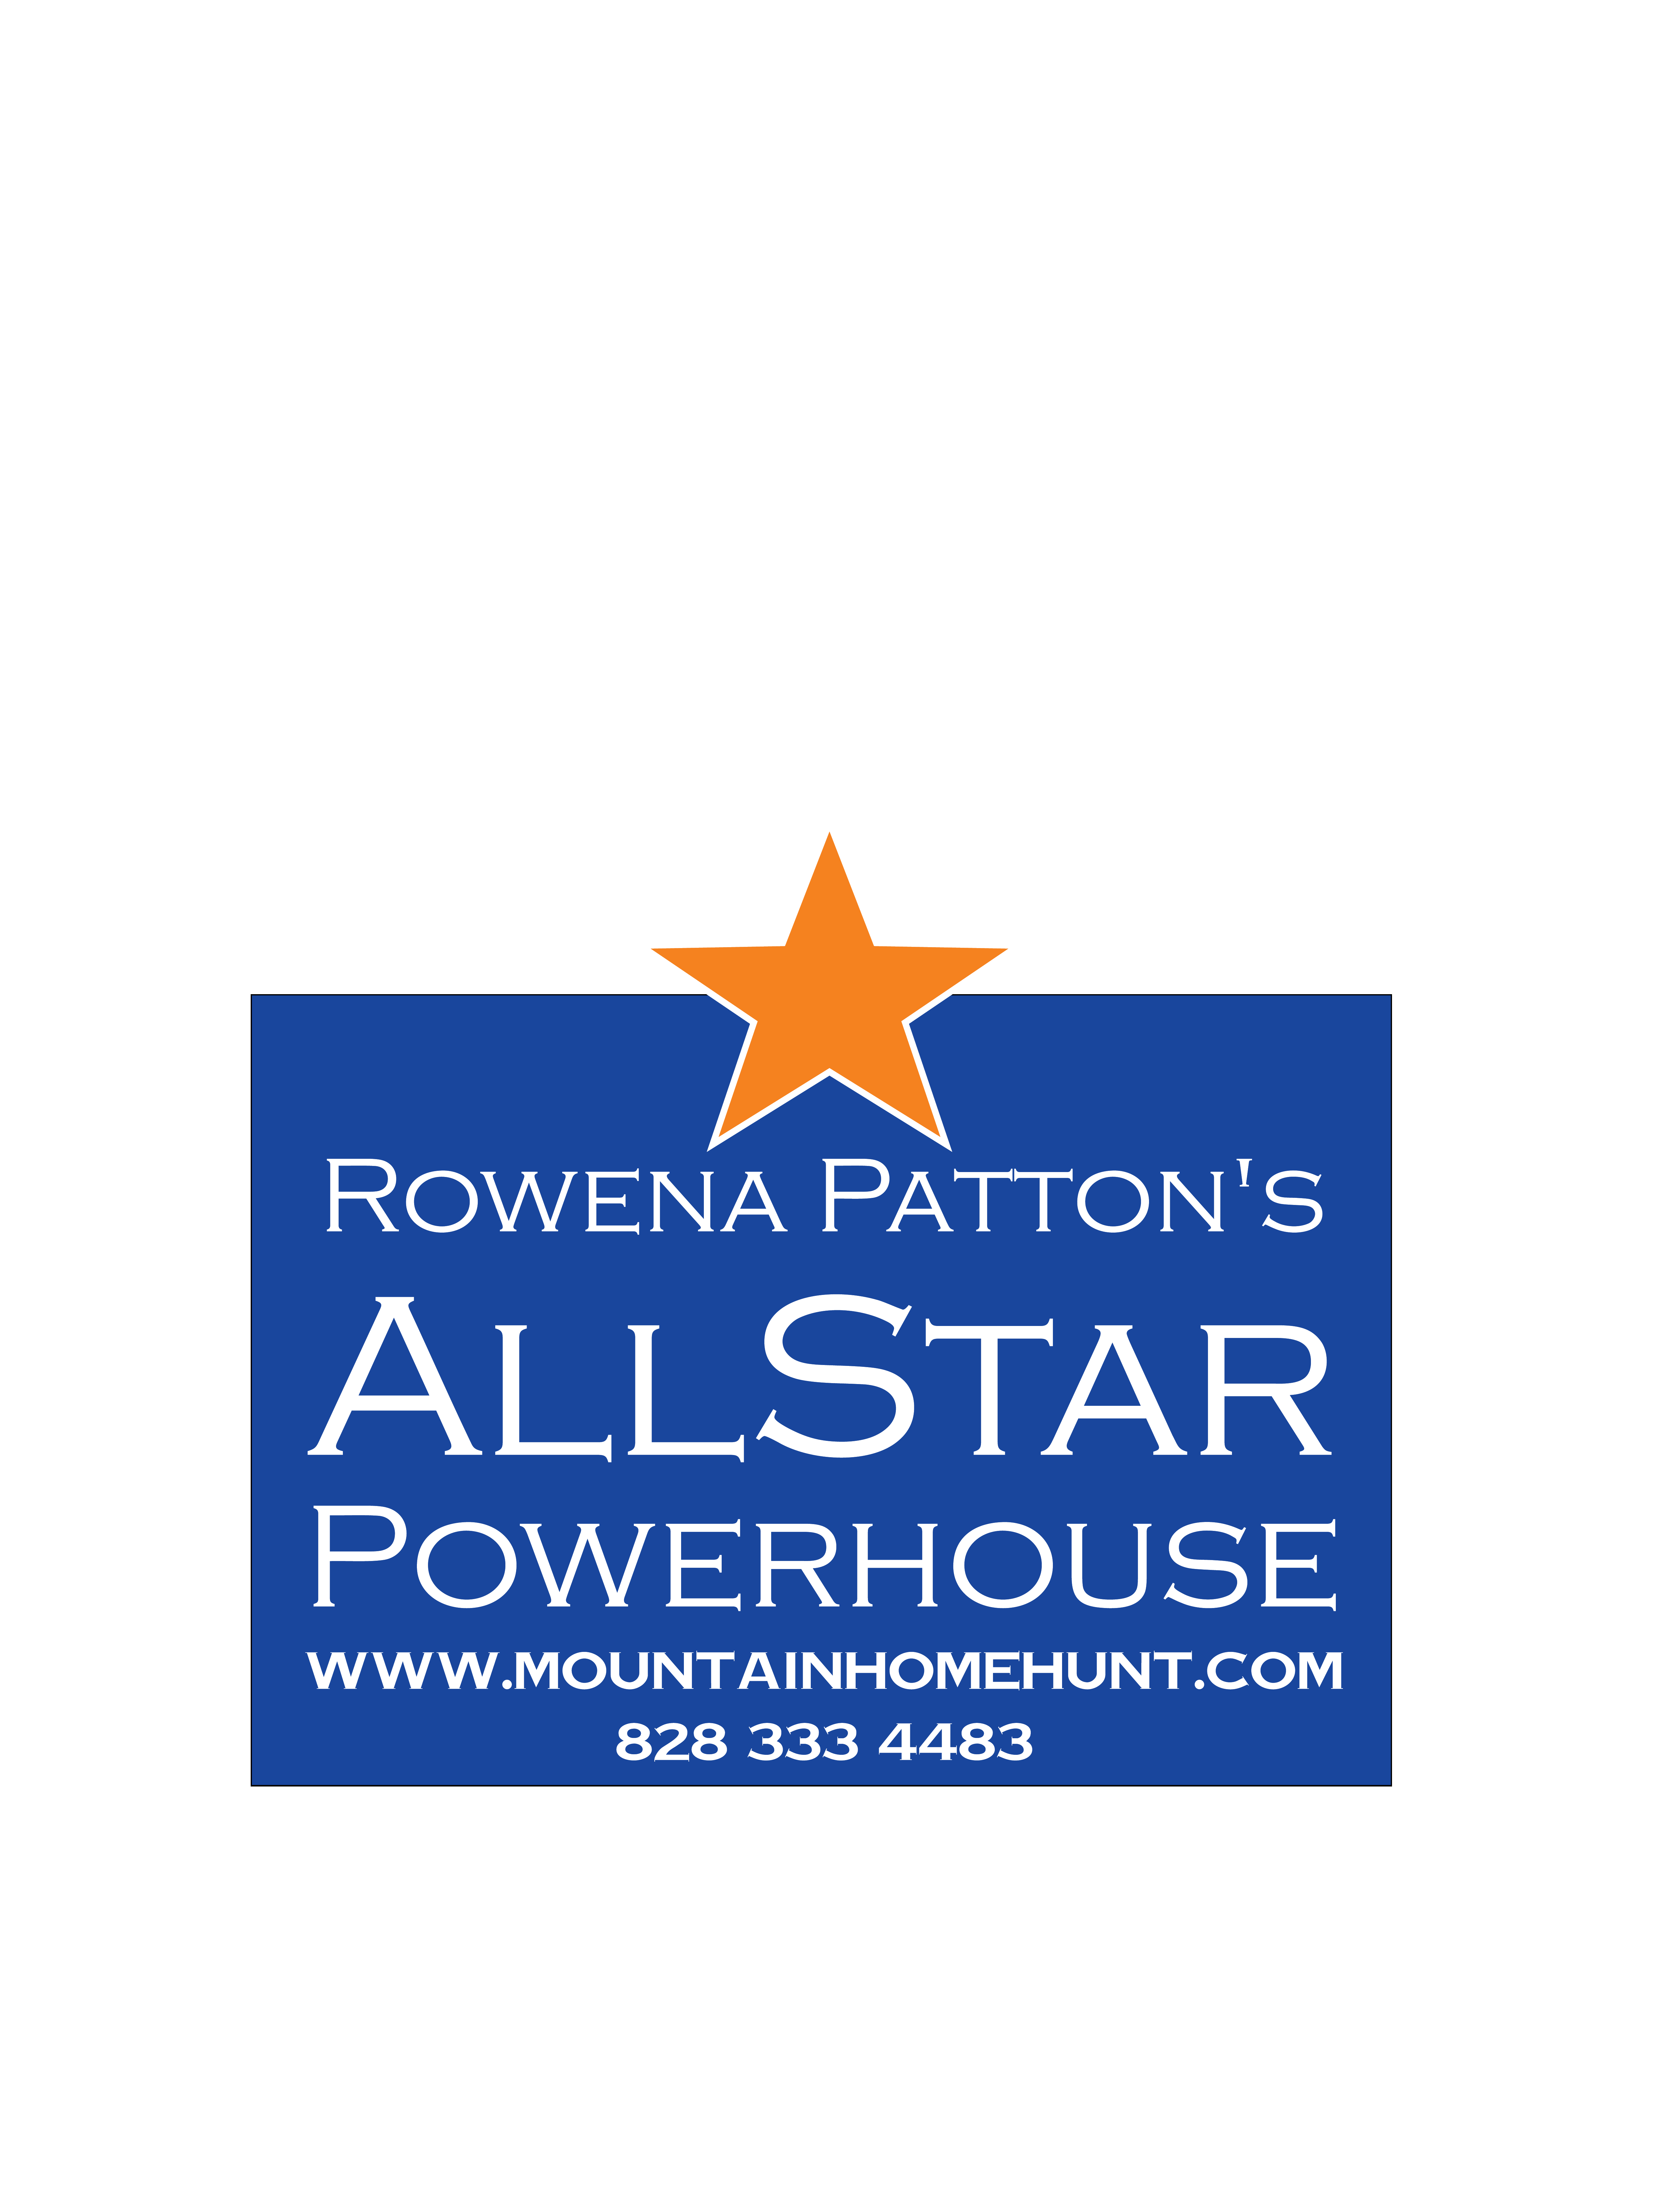 All-Star Powerhouse logo